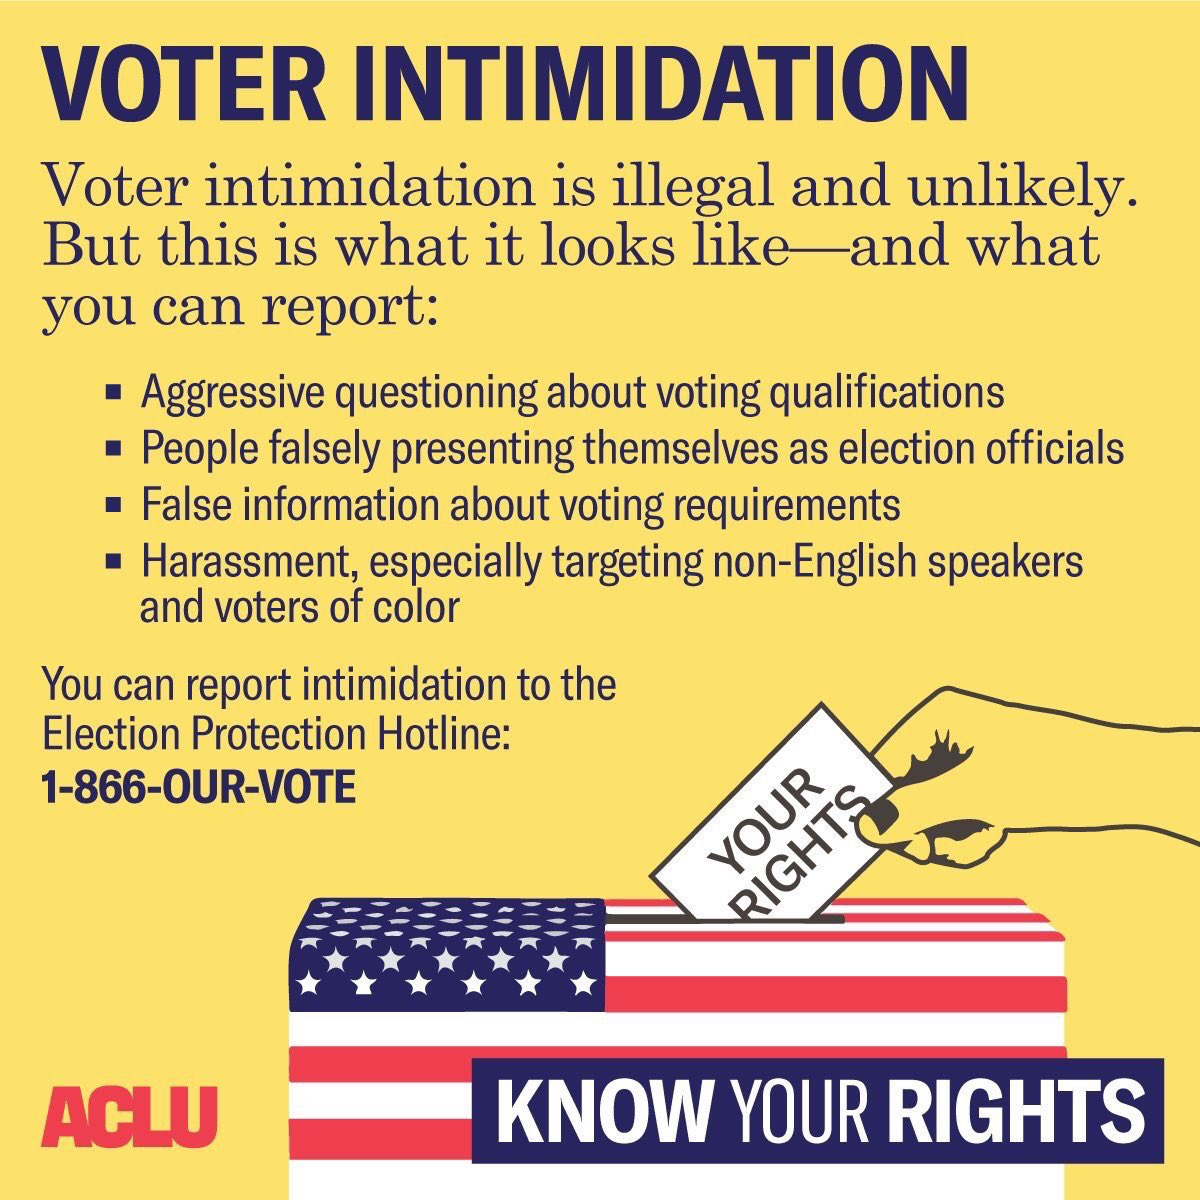 RT @ACLU: Know your rights when voting. #ElectionDay https://t.co/tXyalZ2vqc